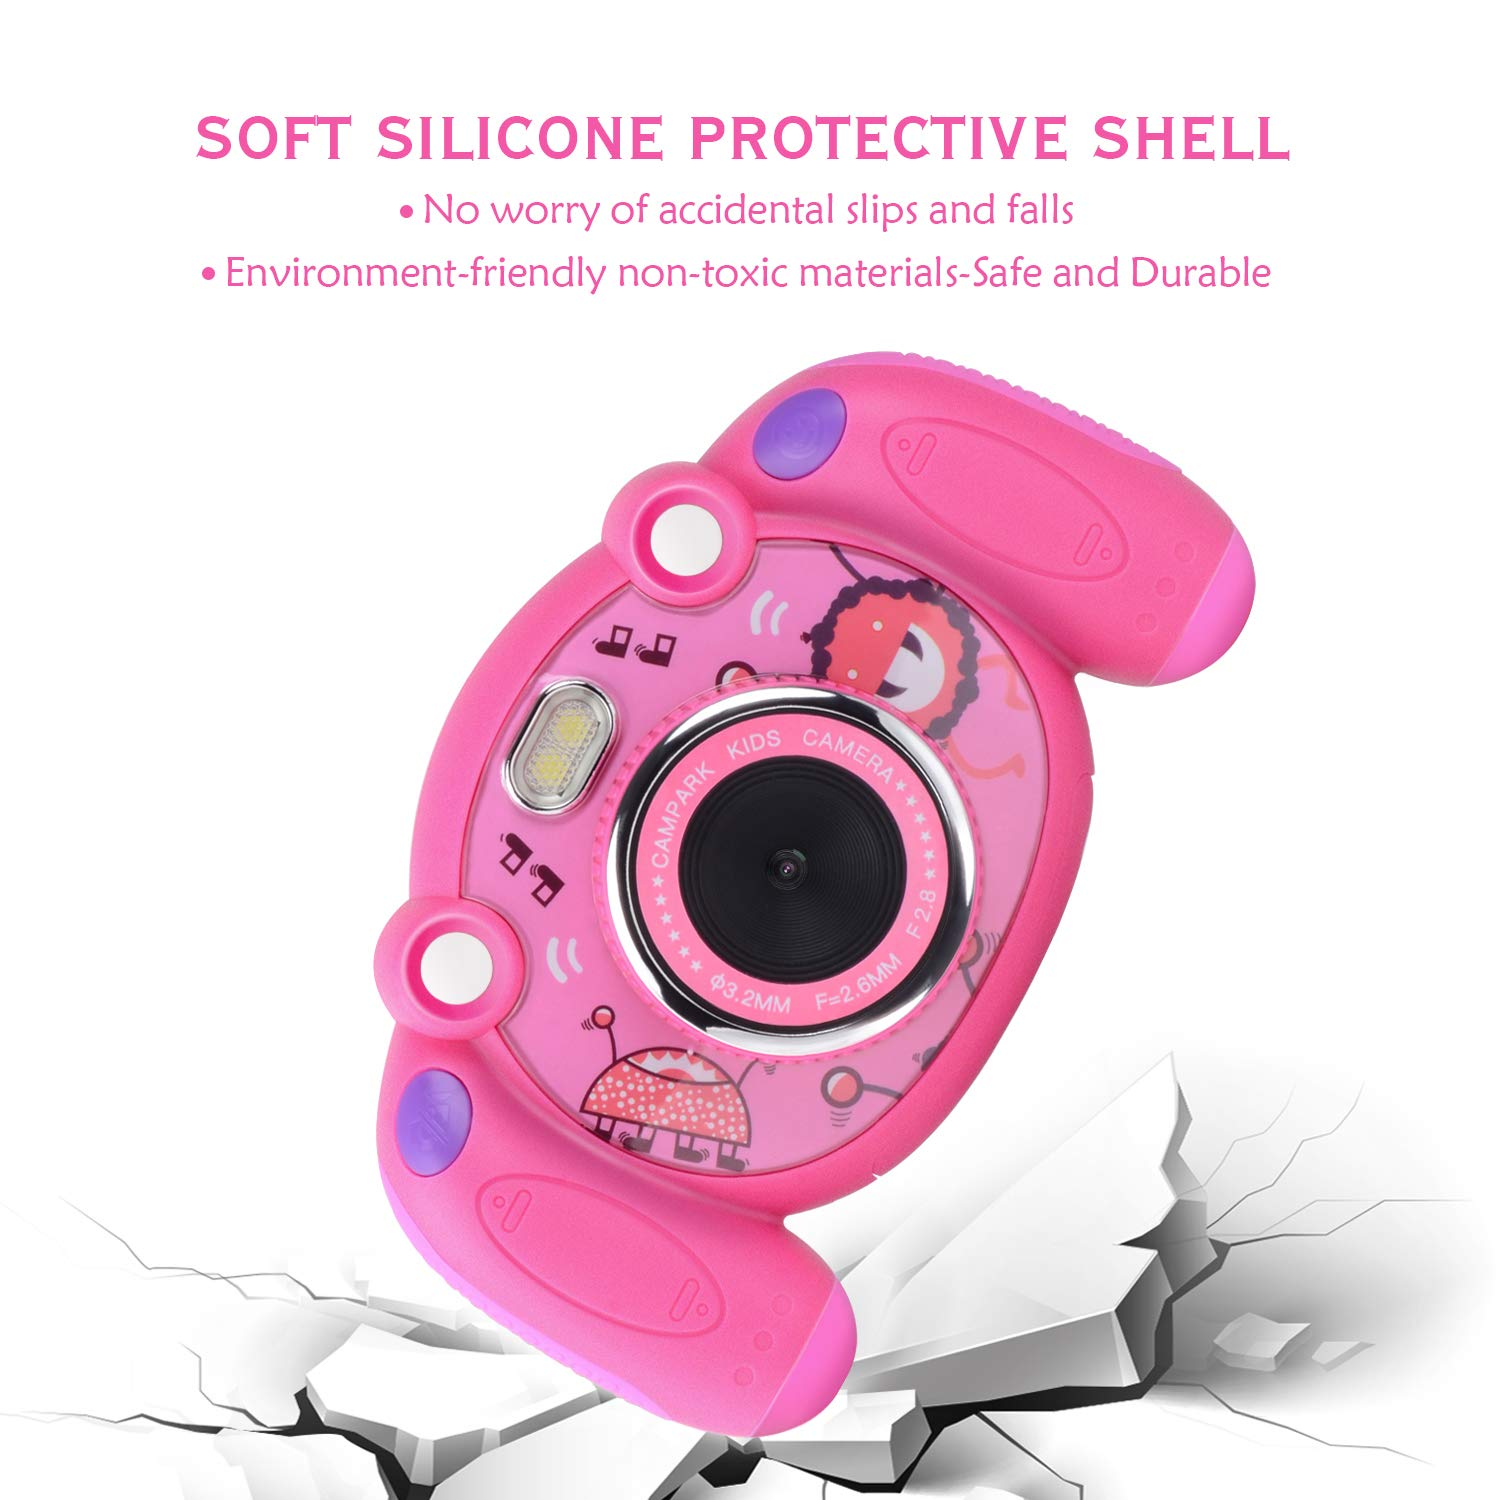 Campark Kids Camera, Mini Child Camcorder with HD LCD Display 16GB Memory Card for Girls Pink Great Birthday Gift by Campark (Image #4)